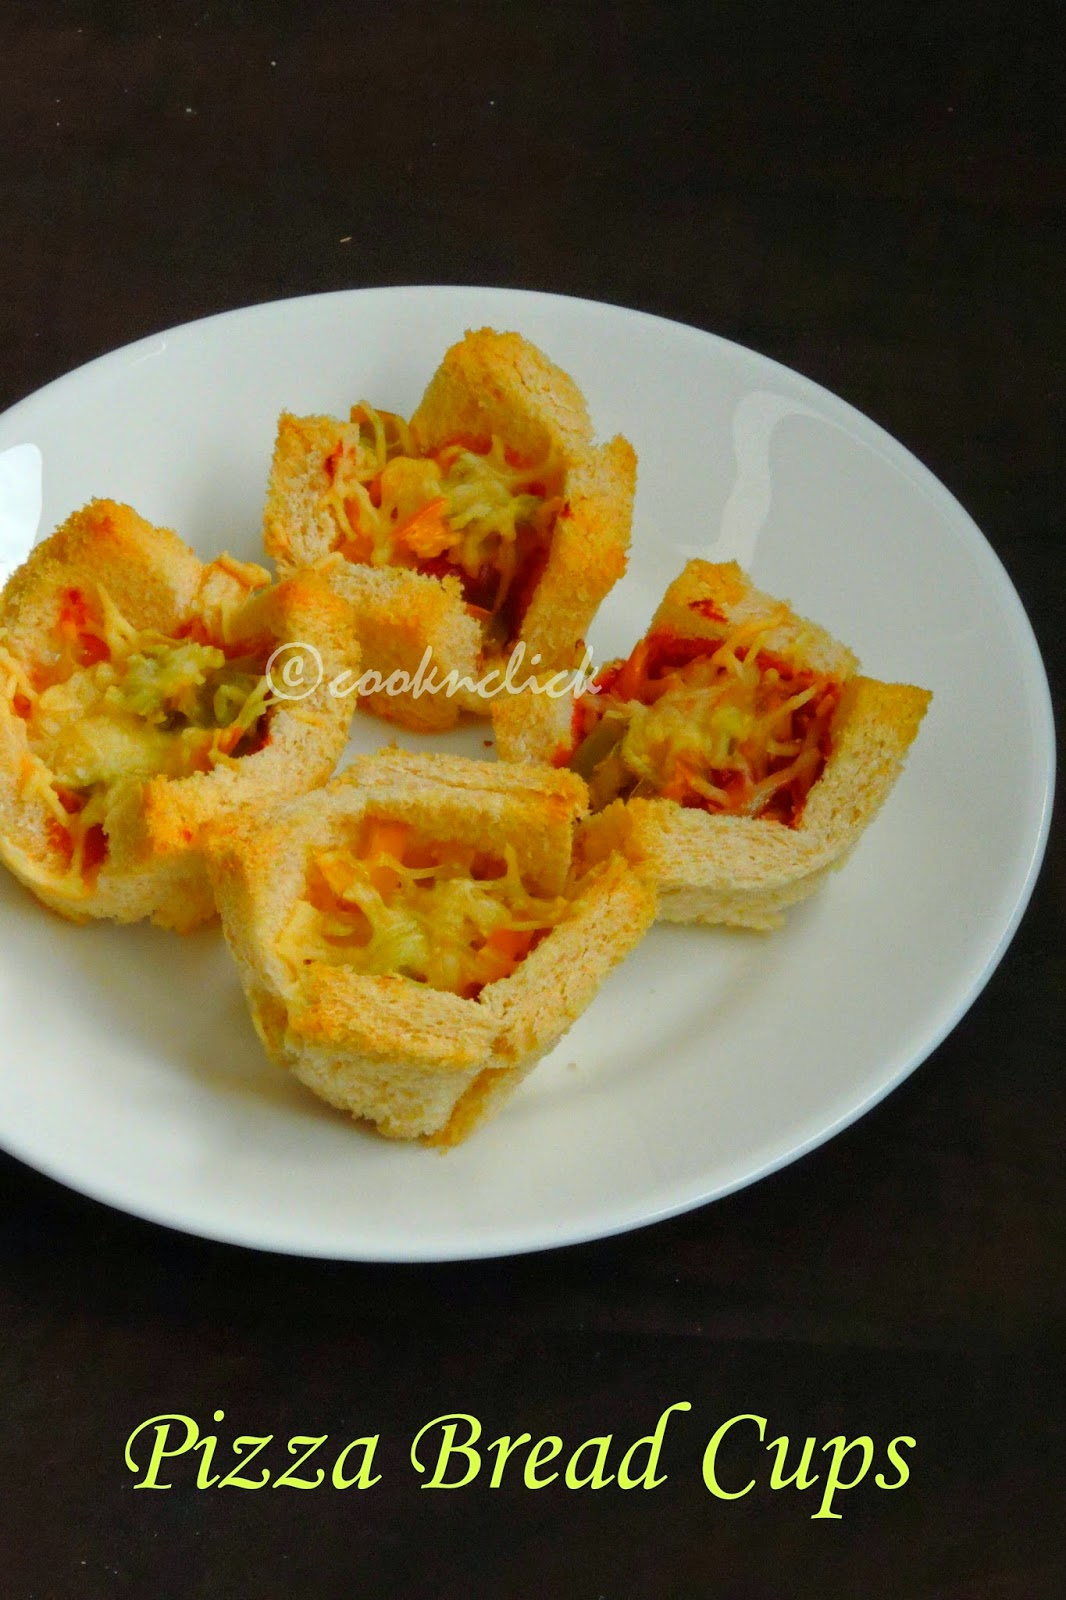 pizza bread cups, bread cups